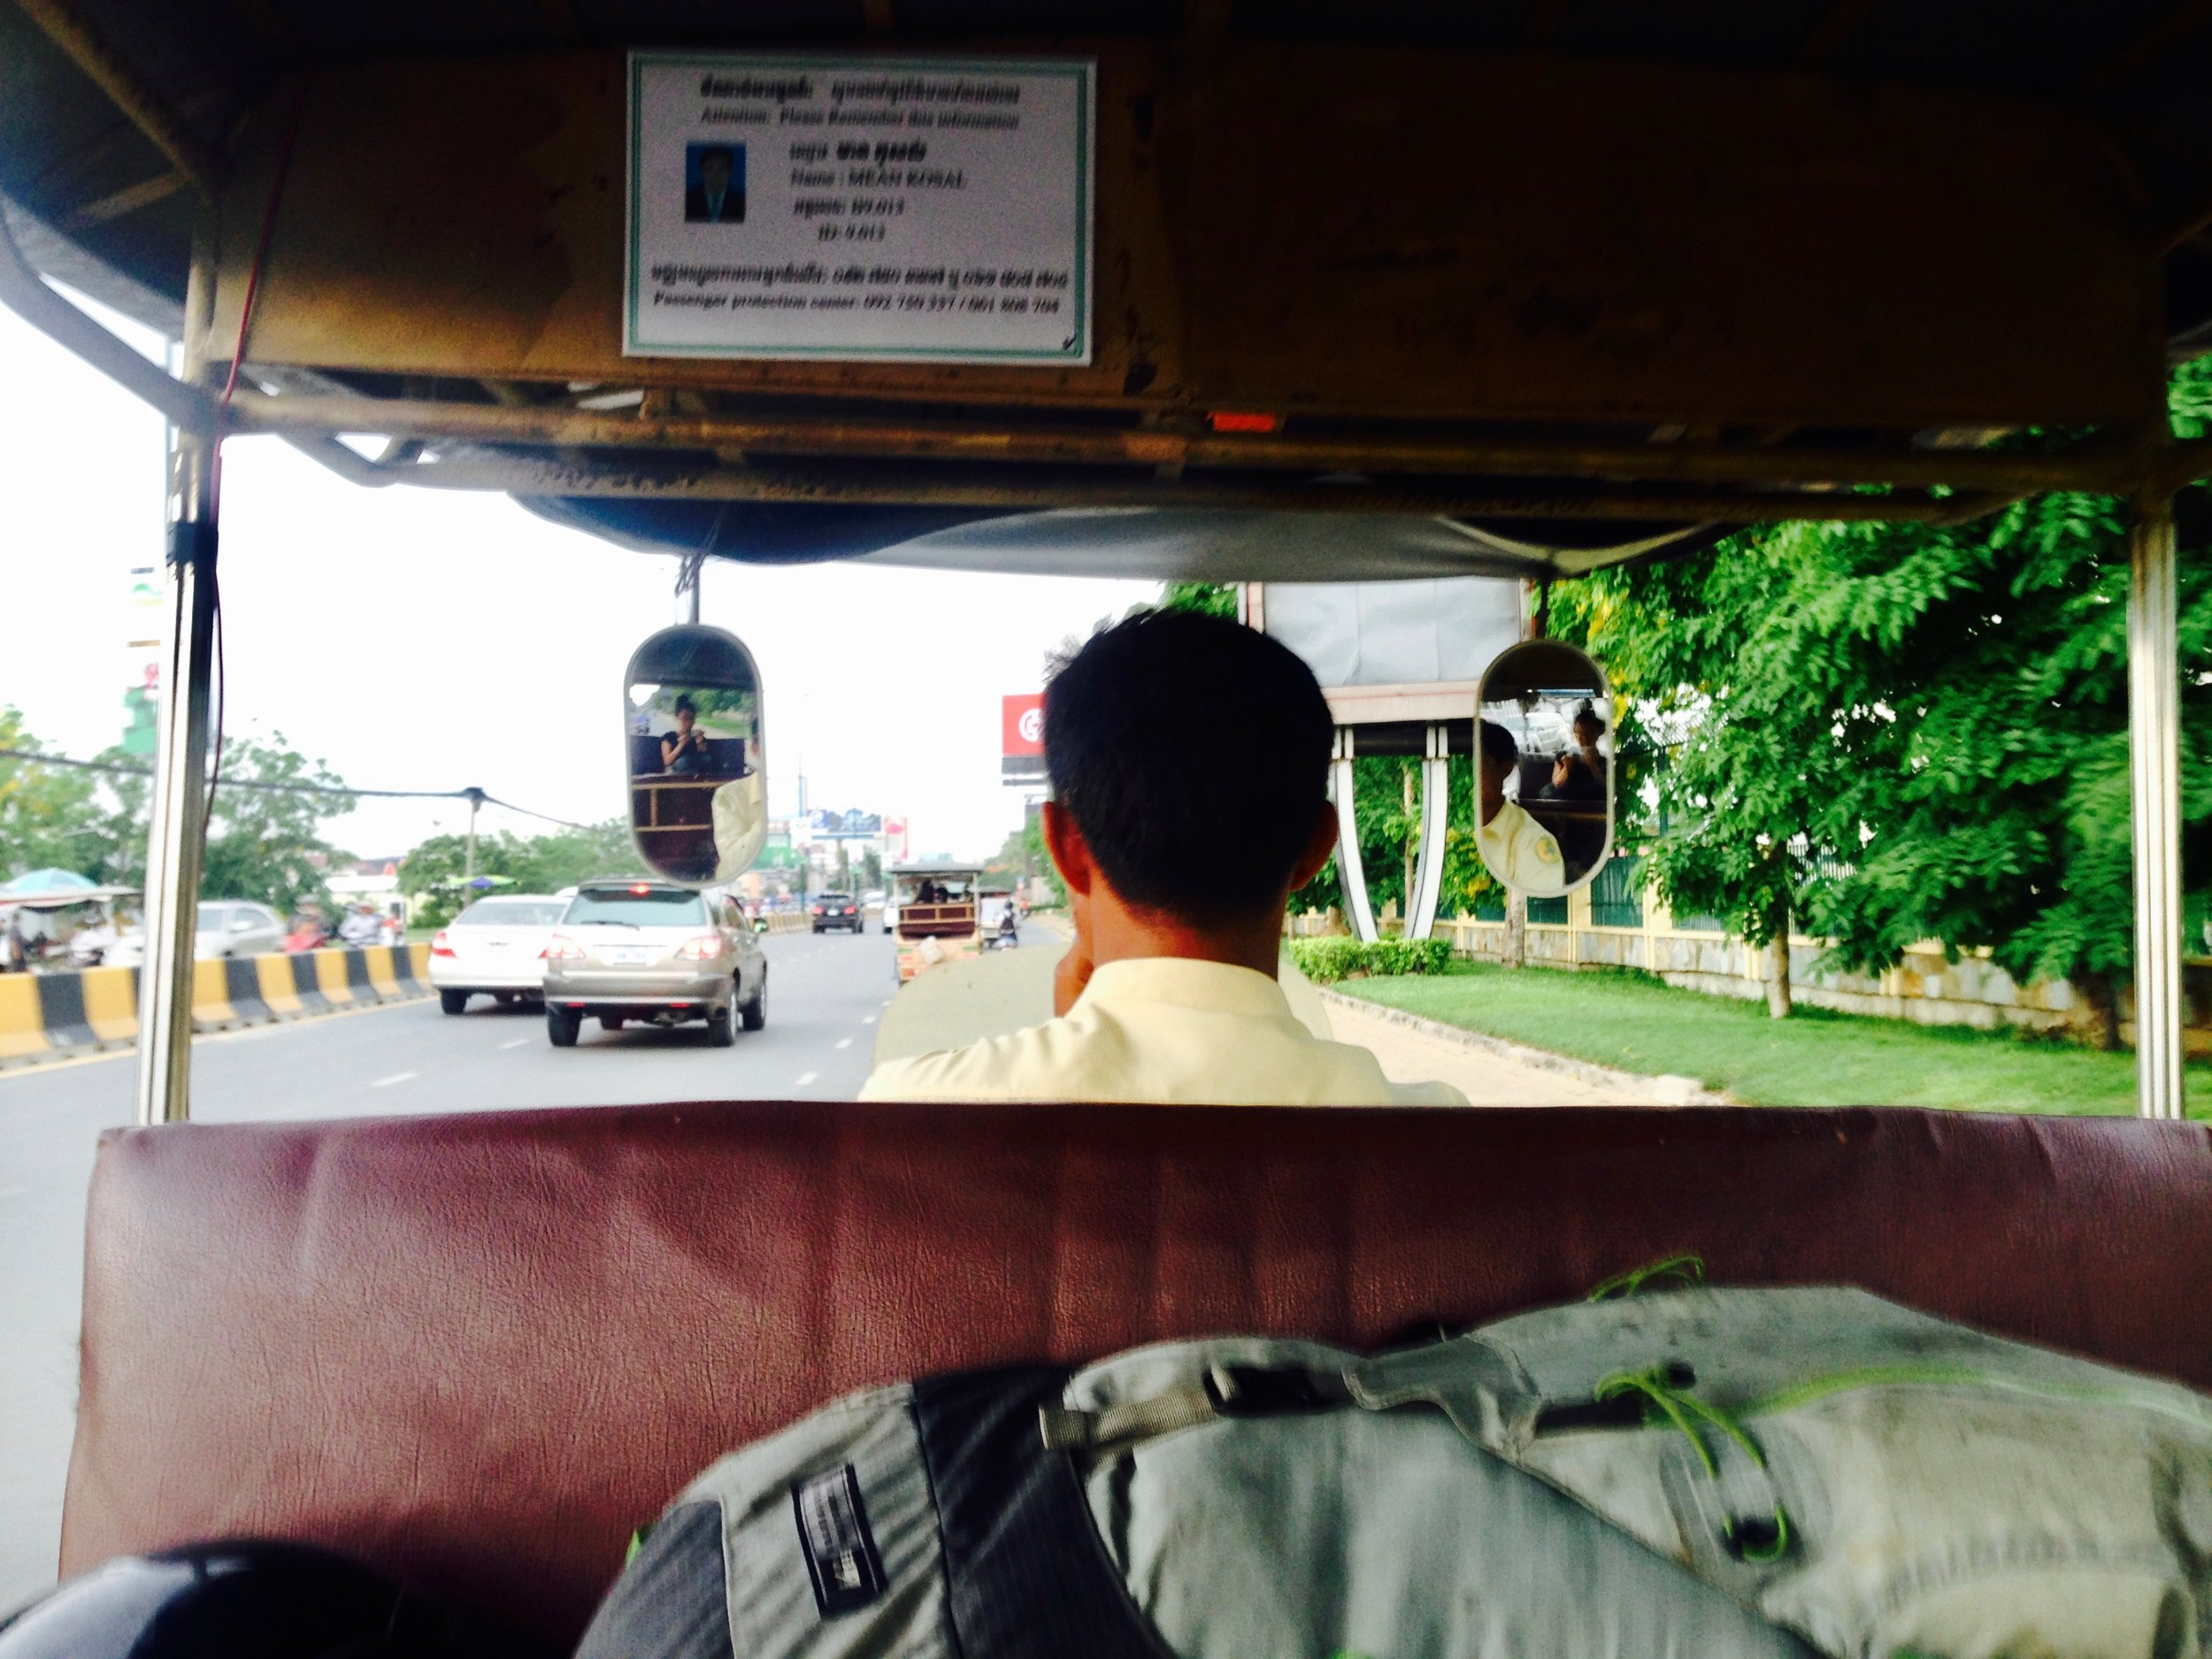 Tuk tucks here have proper curtains on the side (can't see them in this photo)because Cambodian motorbikers are notorious for snatching bags in motion.